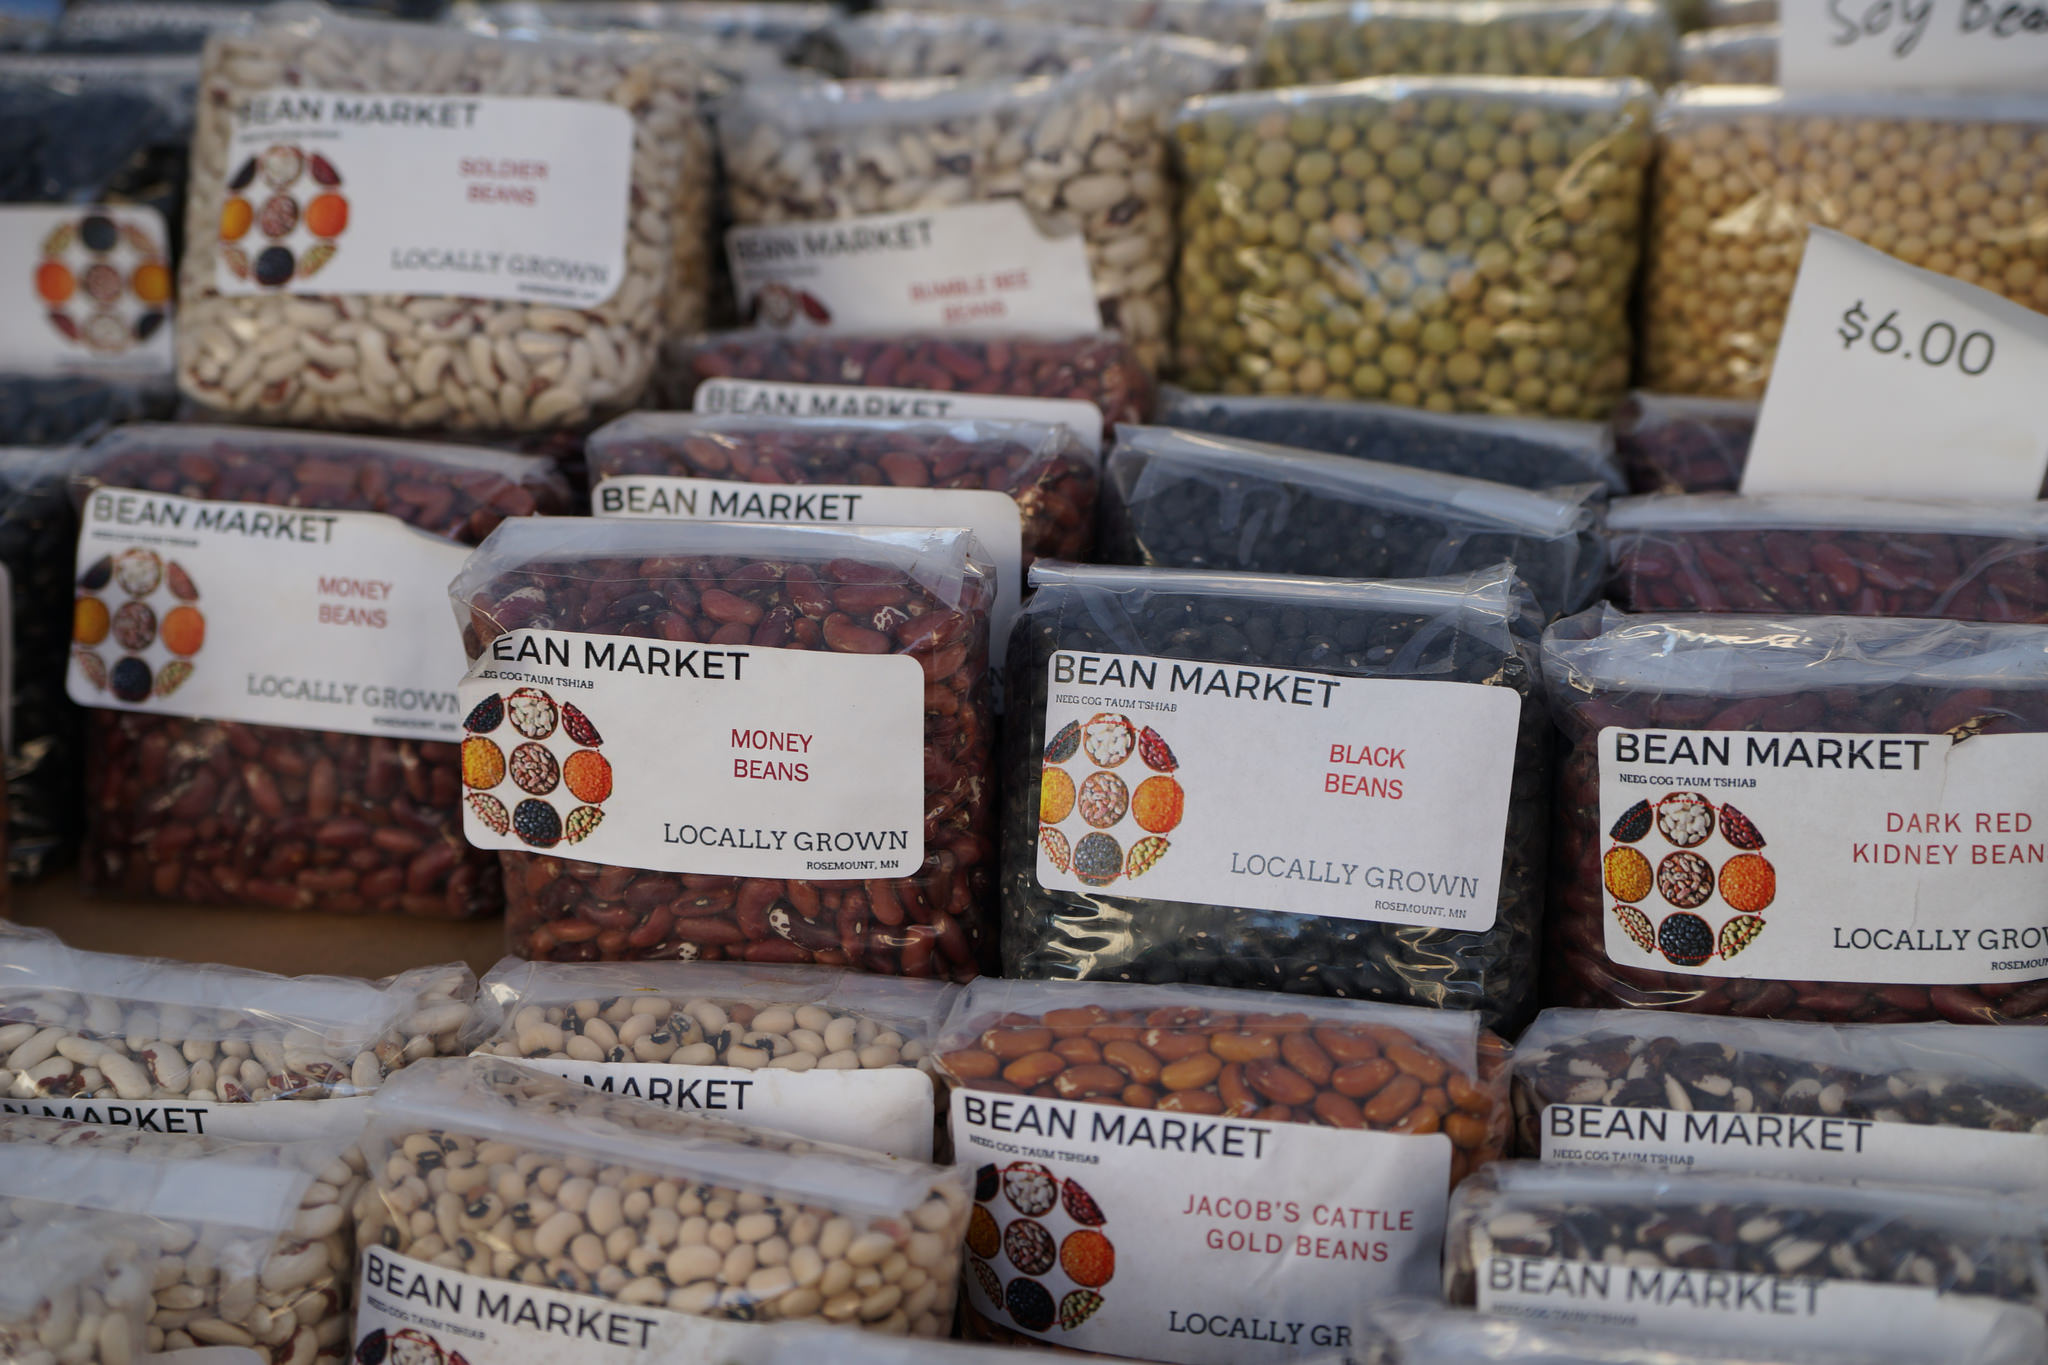 beans with labels bean market